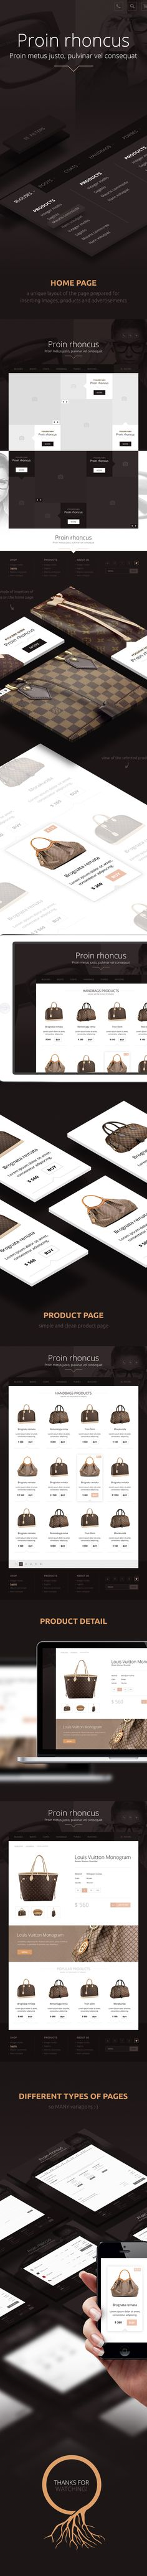 http://www.webdesignserved.com/gallery/Proin-eCommerce/19218375